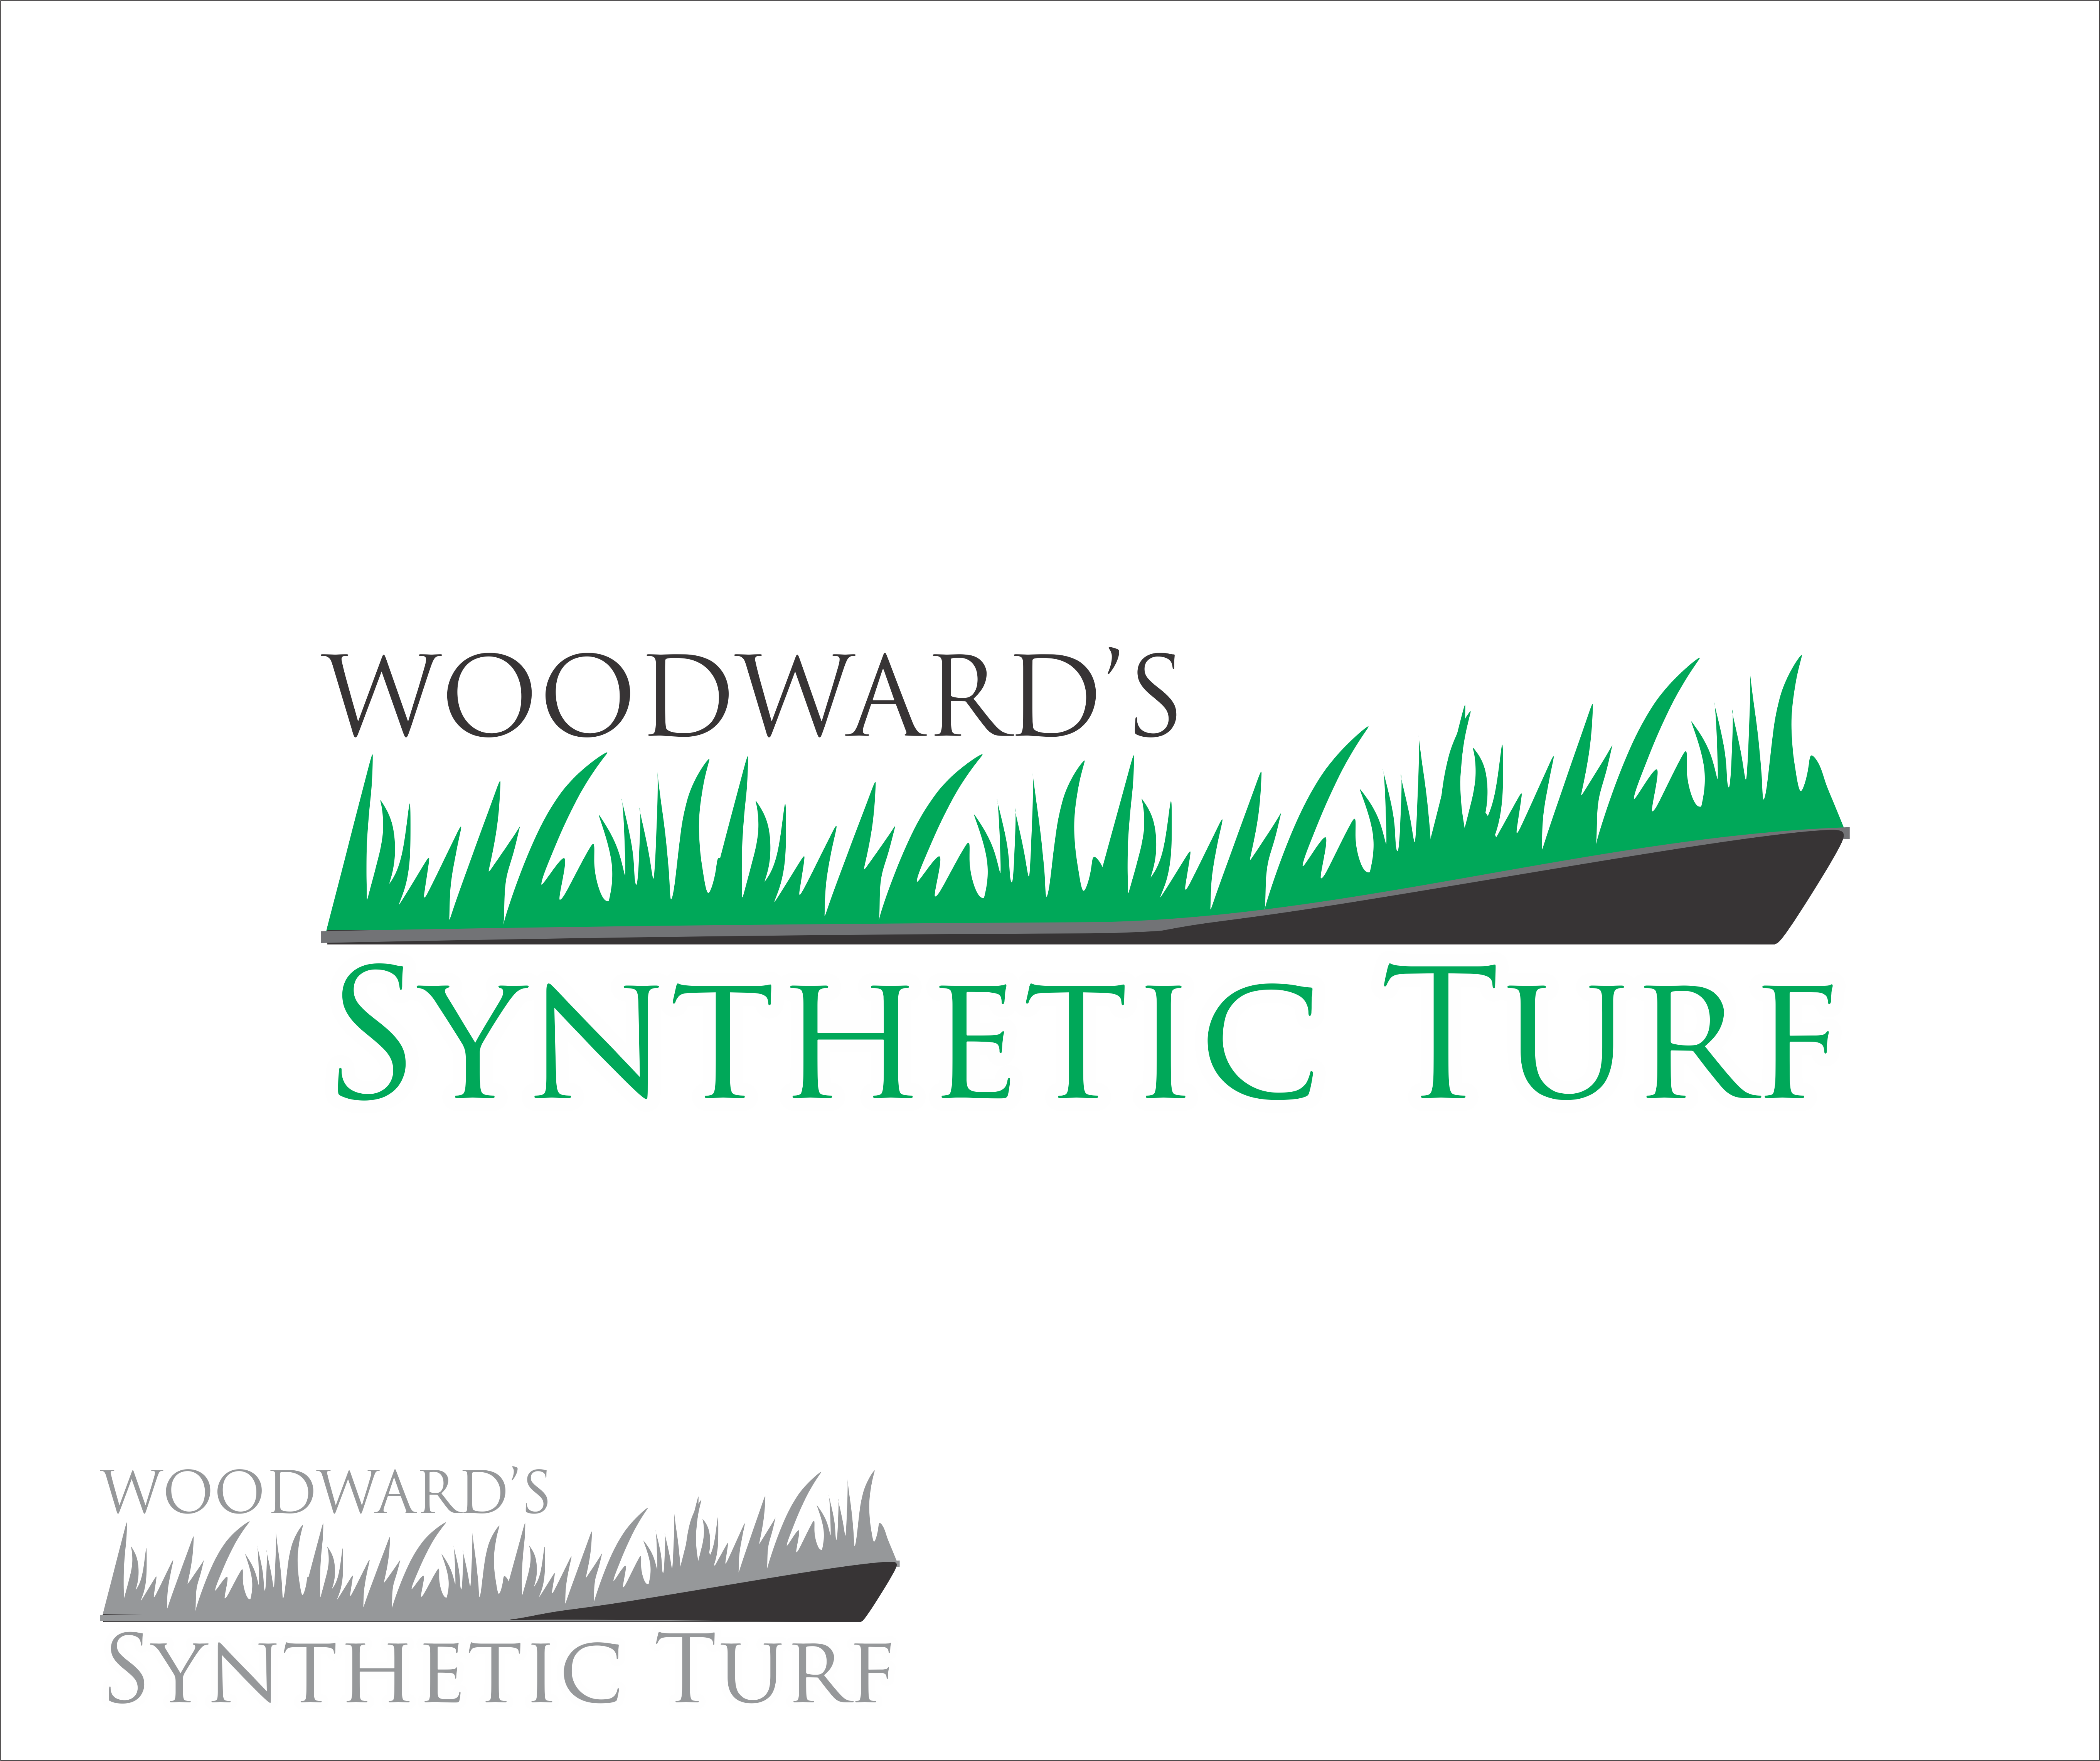 Logo Design by snow - Entry No. 15 in the Logo Design Contest Artistic Logo Design for Woodward's Synthetic Turf.